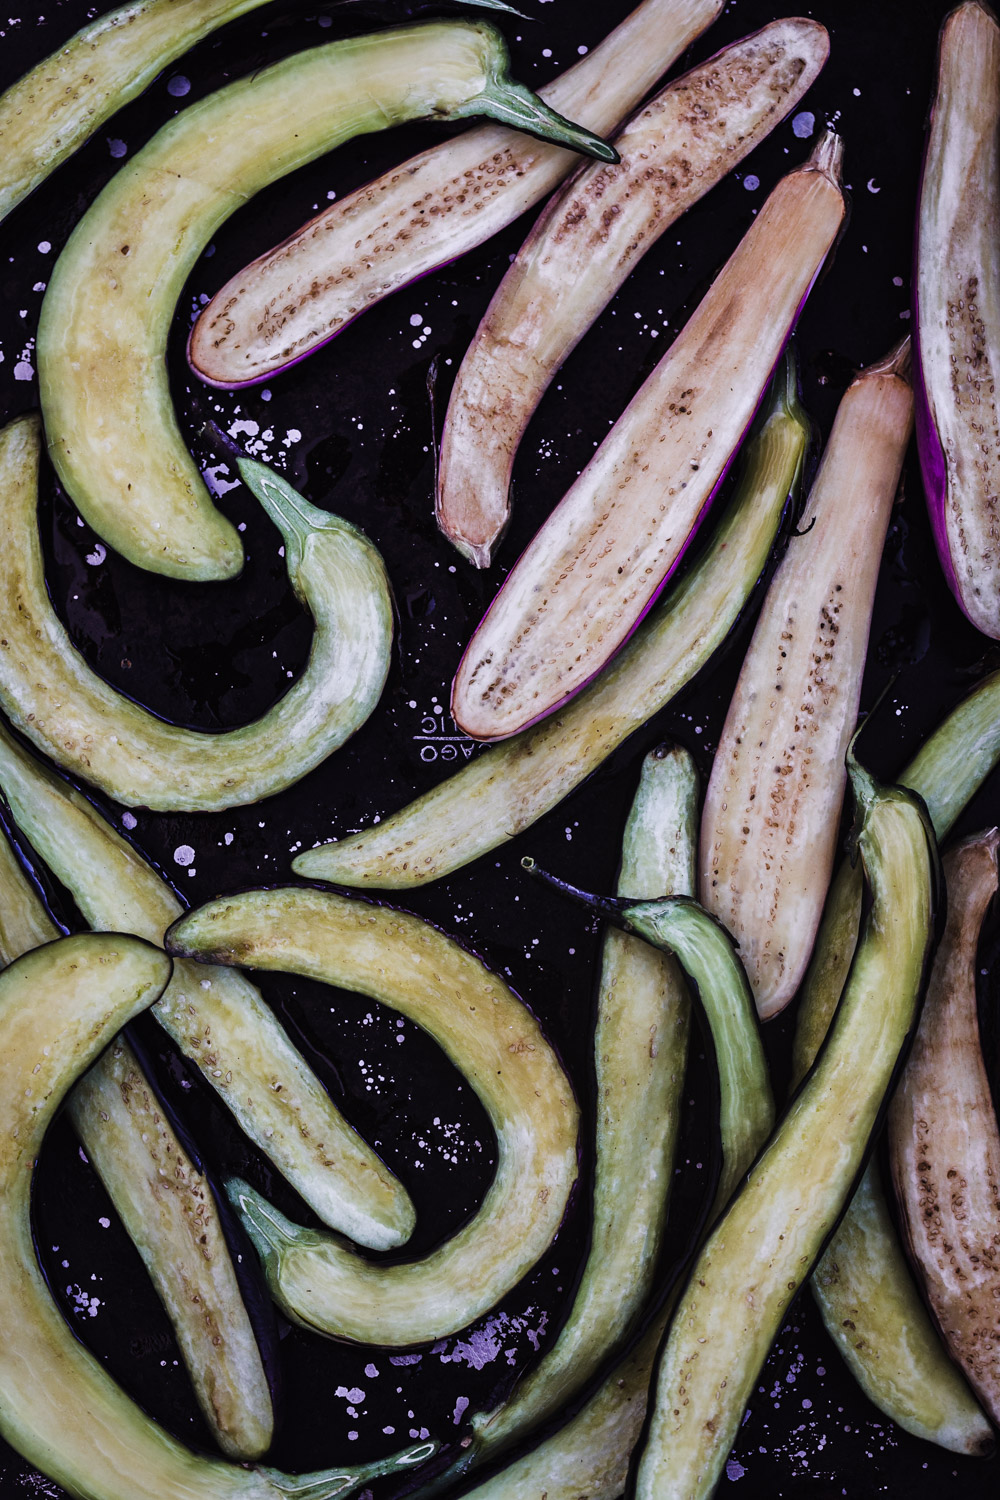 Japanese eggplant sliced in half lengthwise and coated with sesame oil.